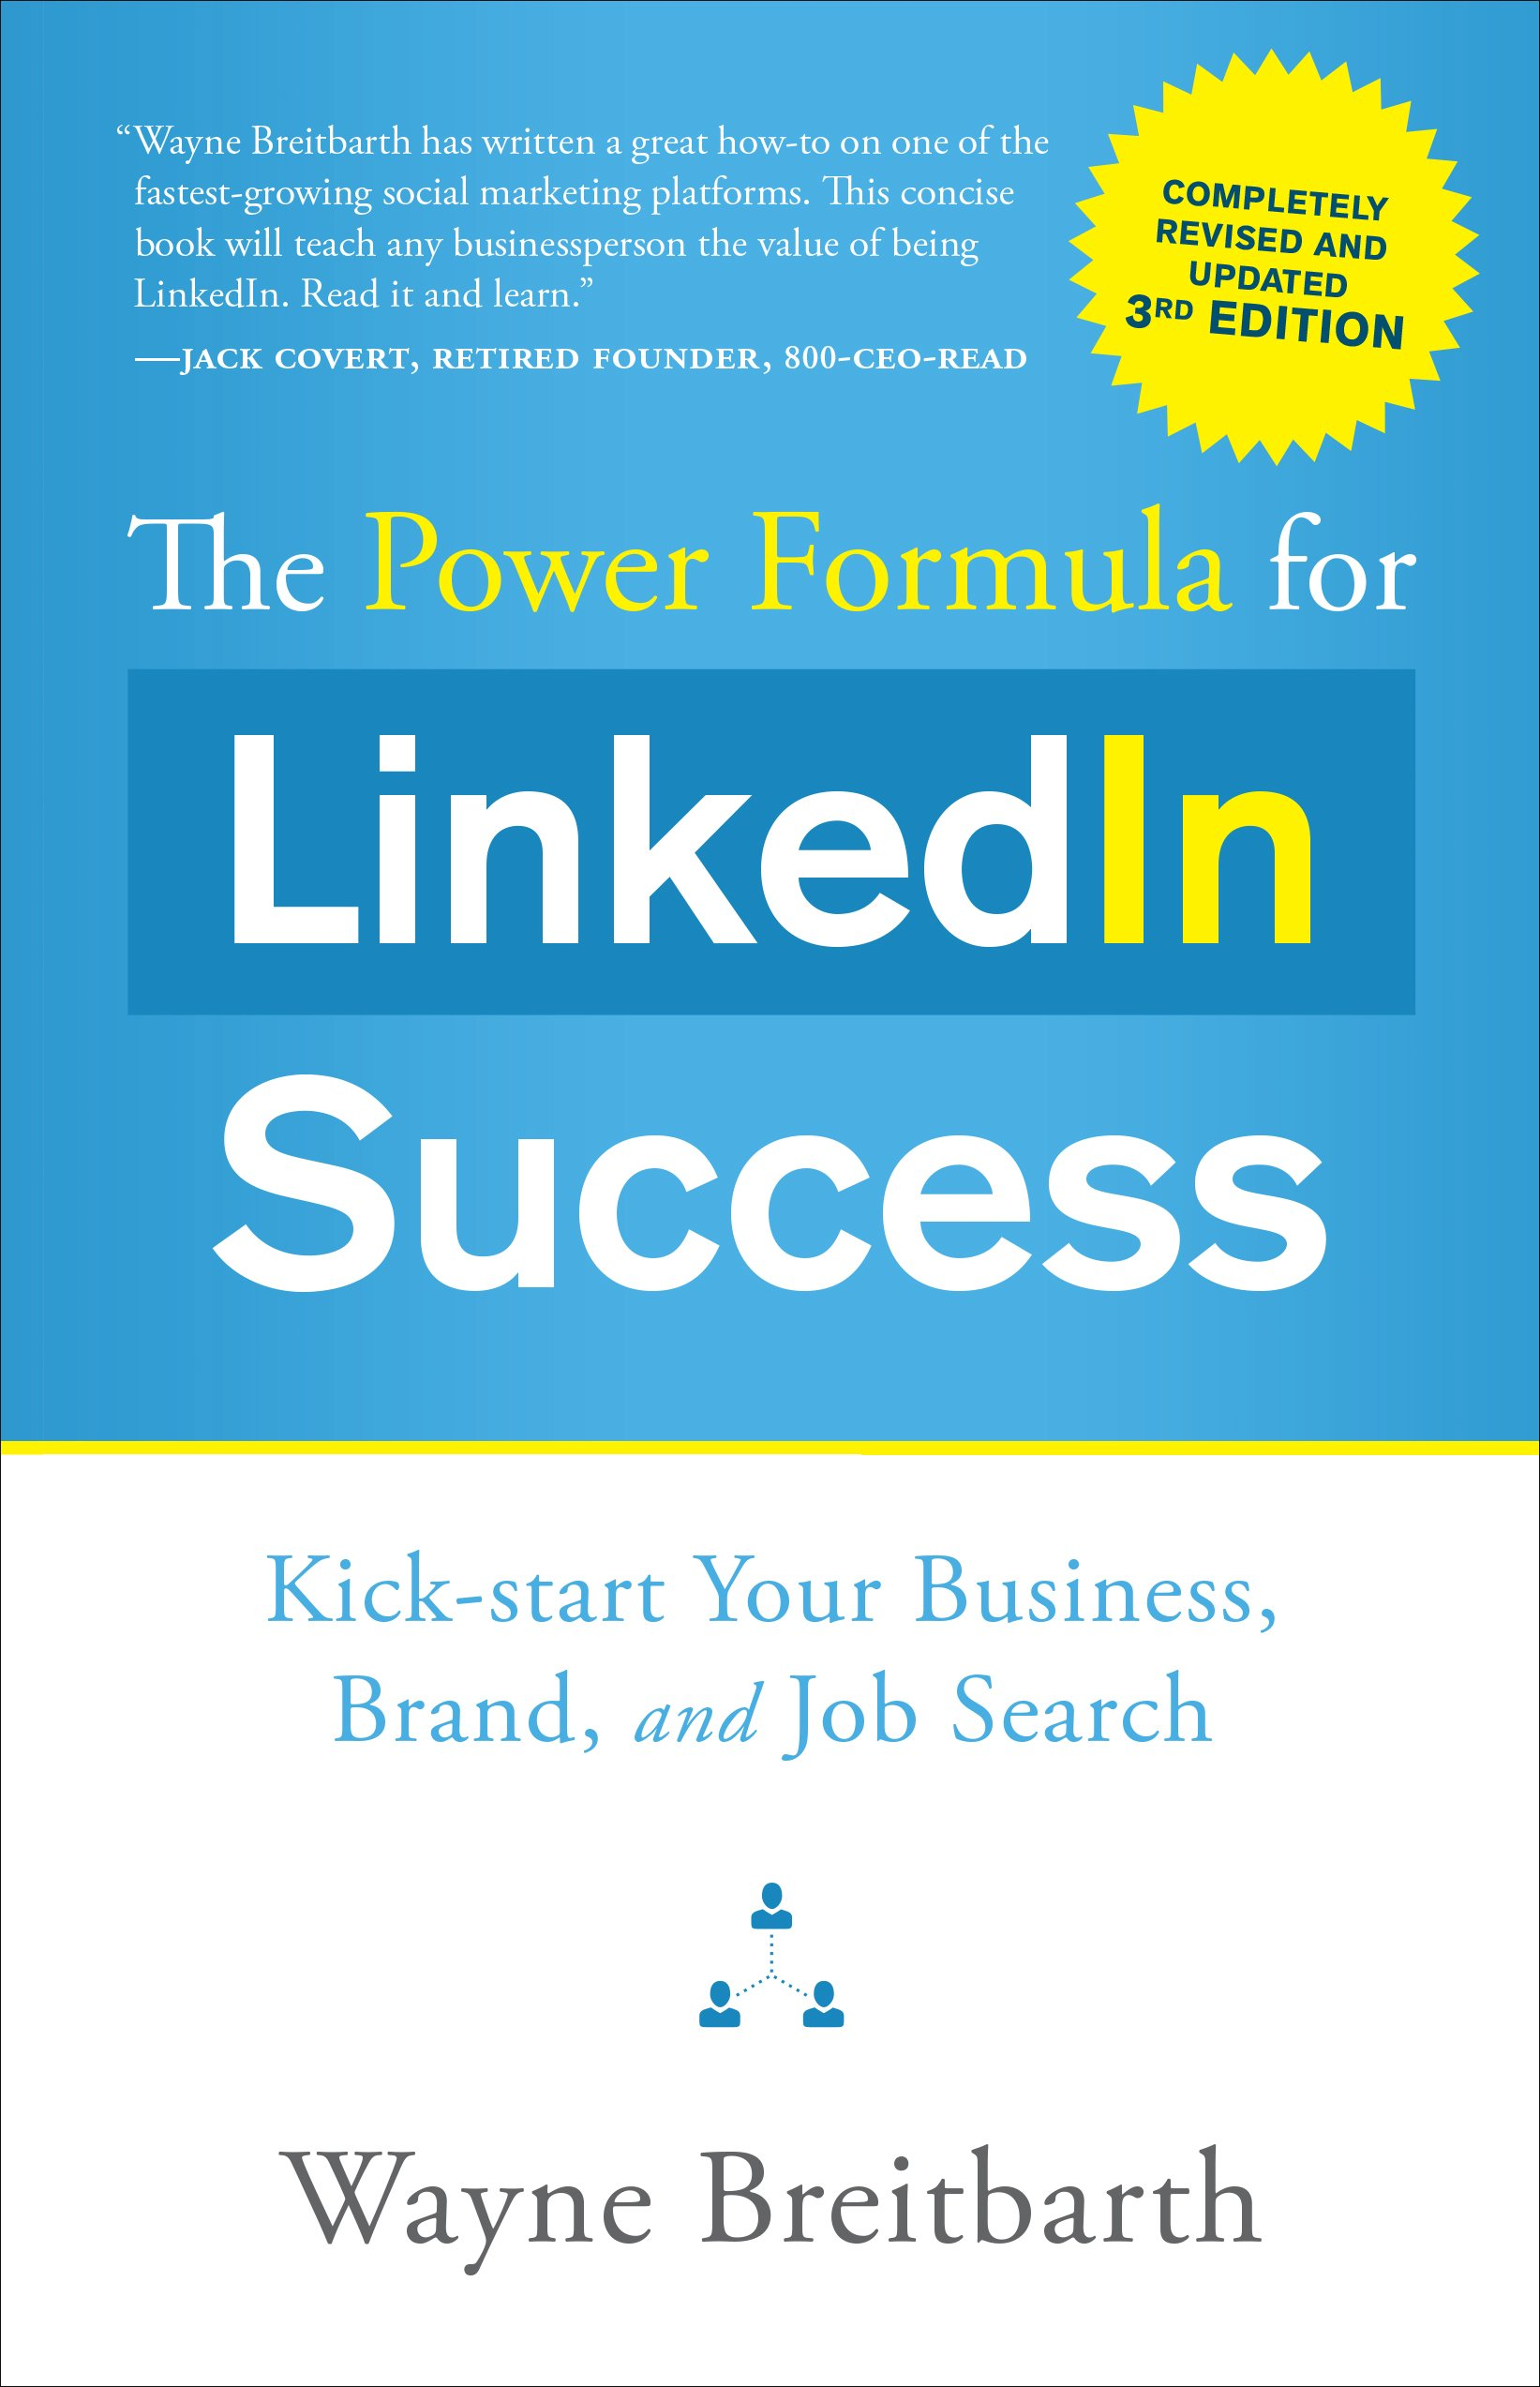 The Power Formula for Linkedin Success (Third Edition - Completely  Revised): Kick-Start Your Business, Brand, and Job Search: Wayne  Breitbarth: ...